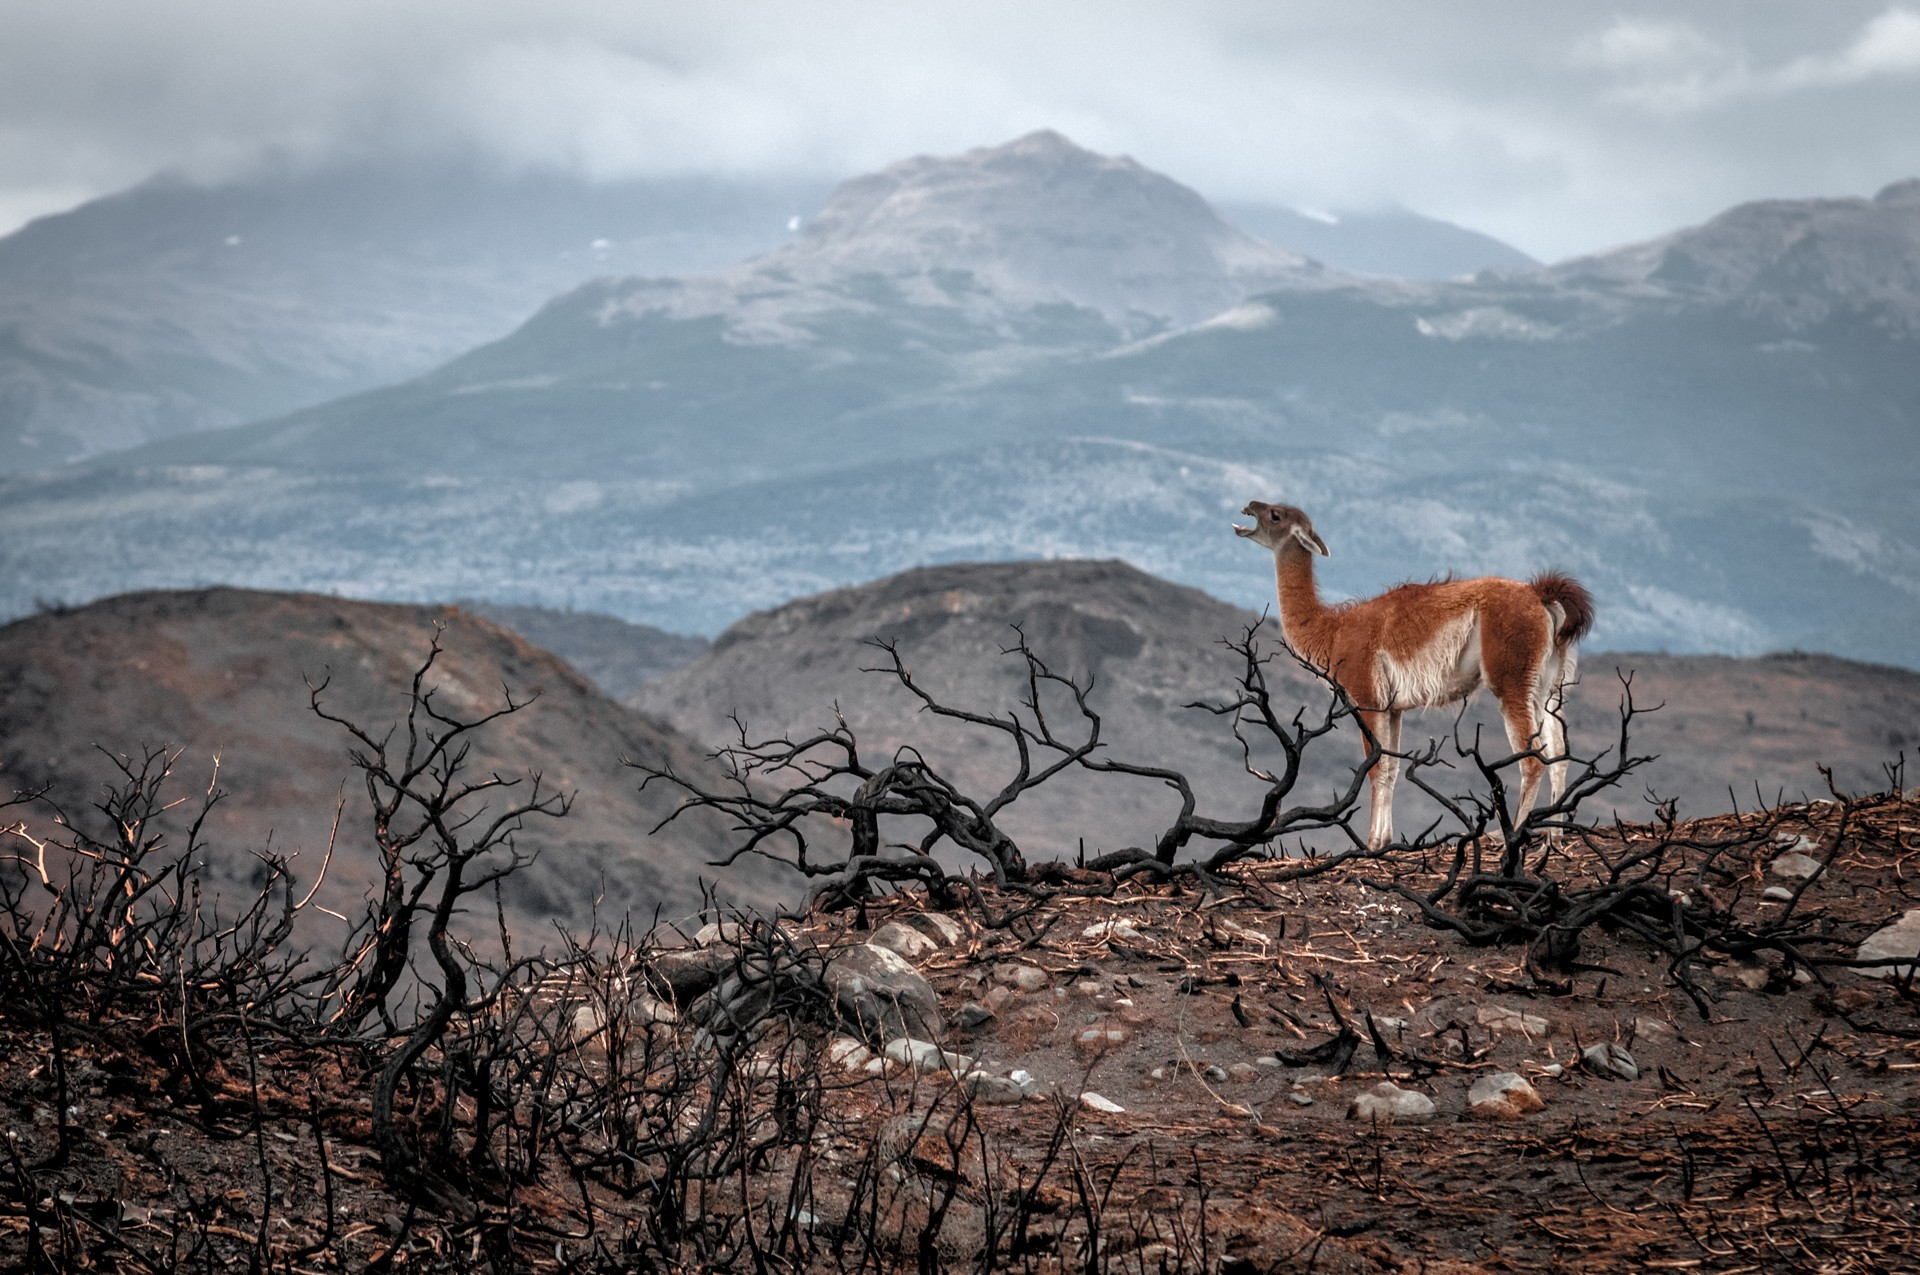 A llama calls for her herd after a forest fire.